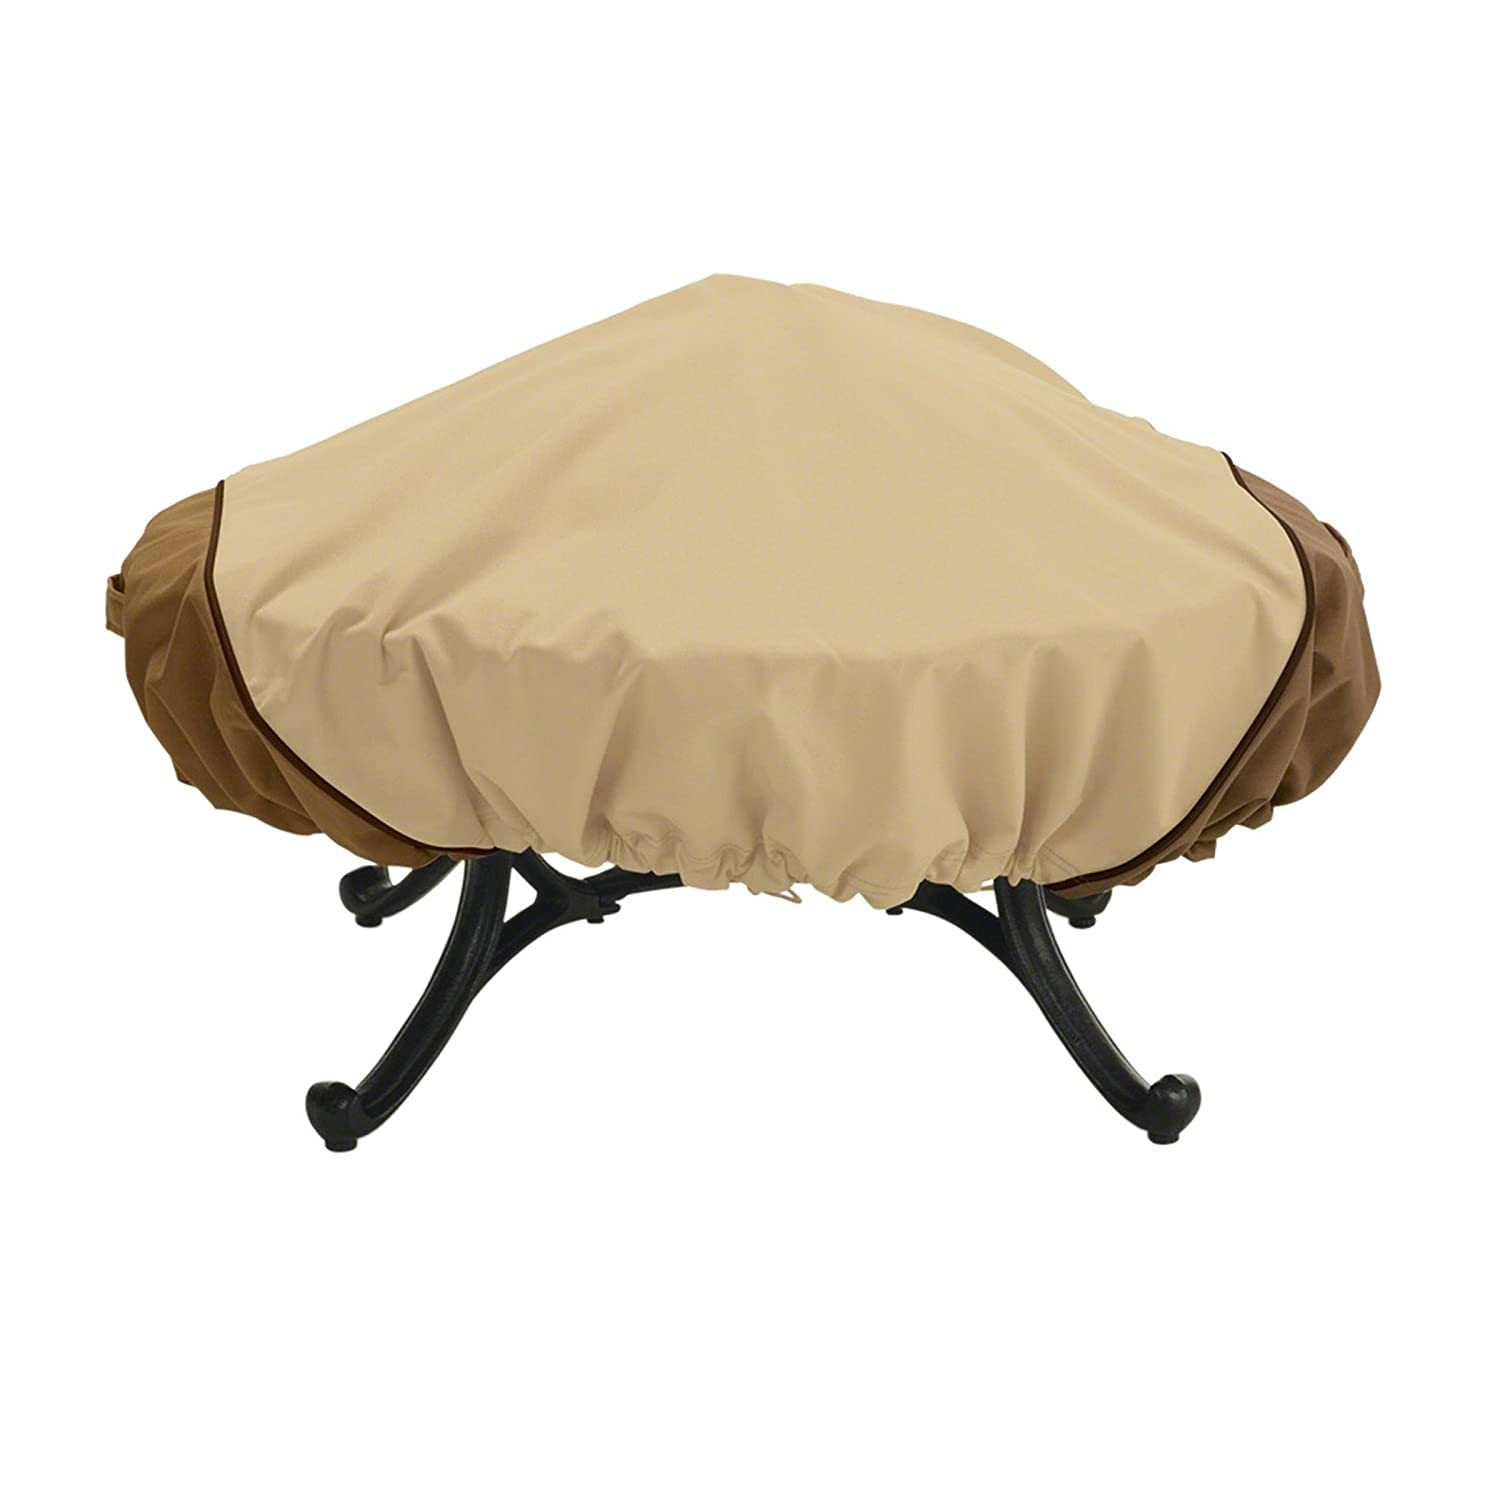 Fire Pit Covers Round 48 Round Fire Pit Cover by